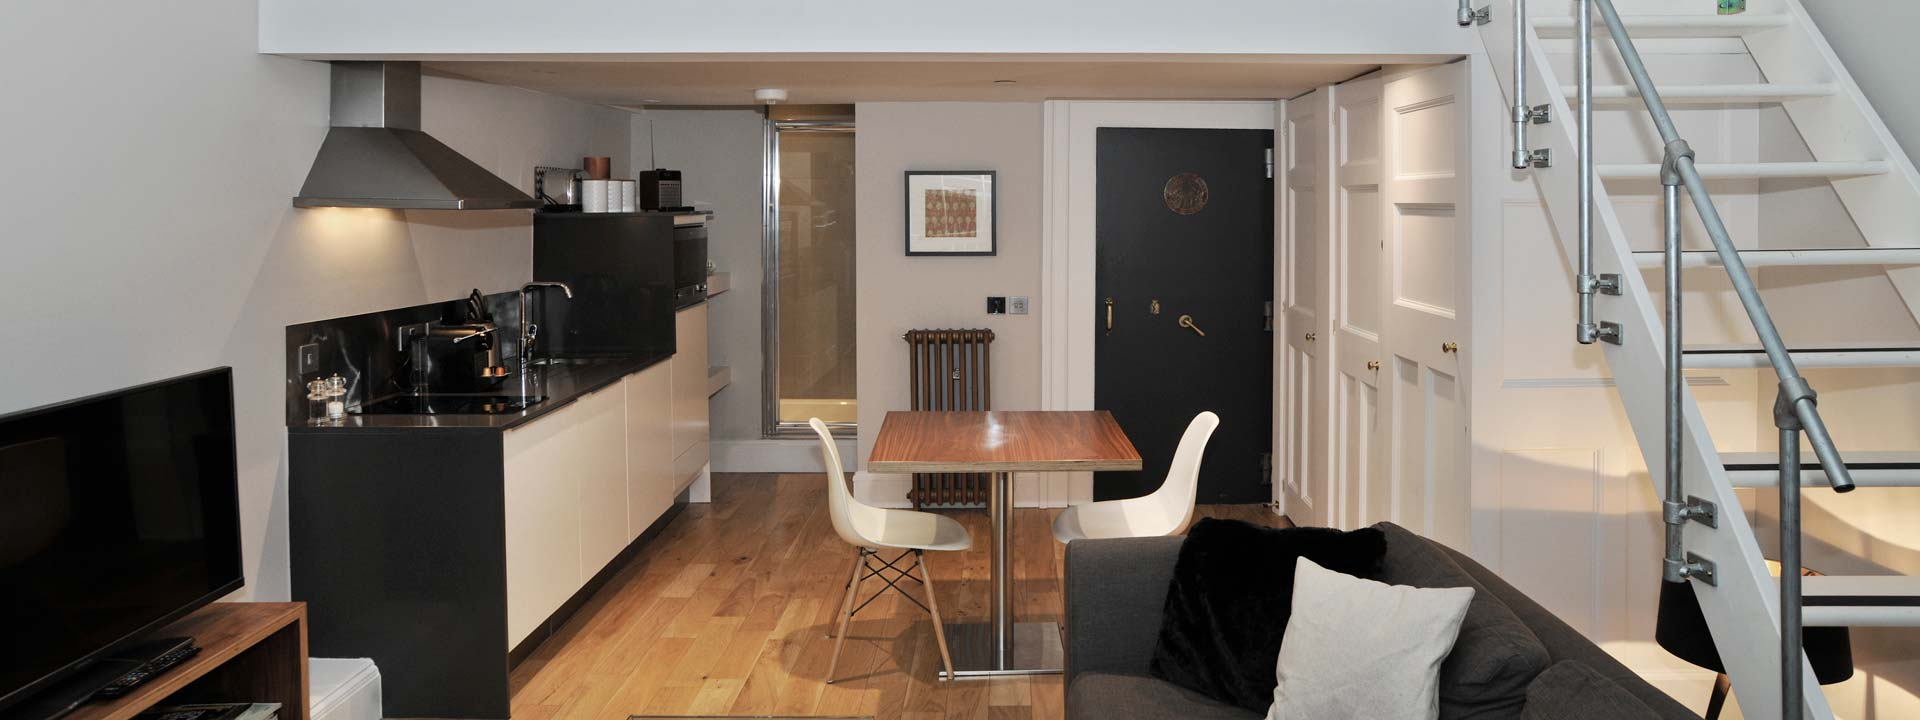 Apartments-Edinburgh-Linton-Collection